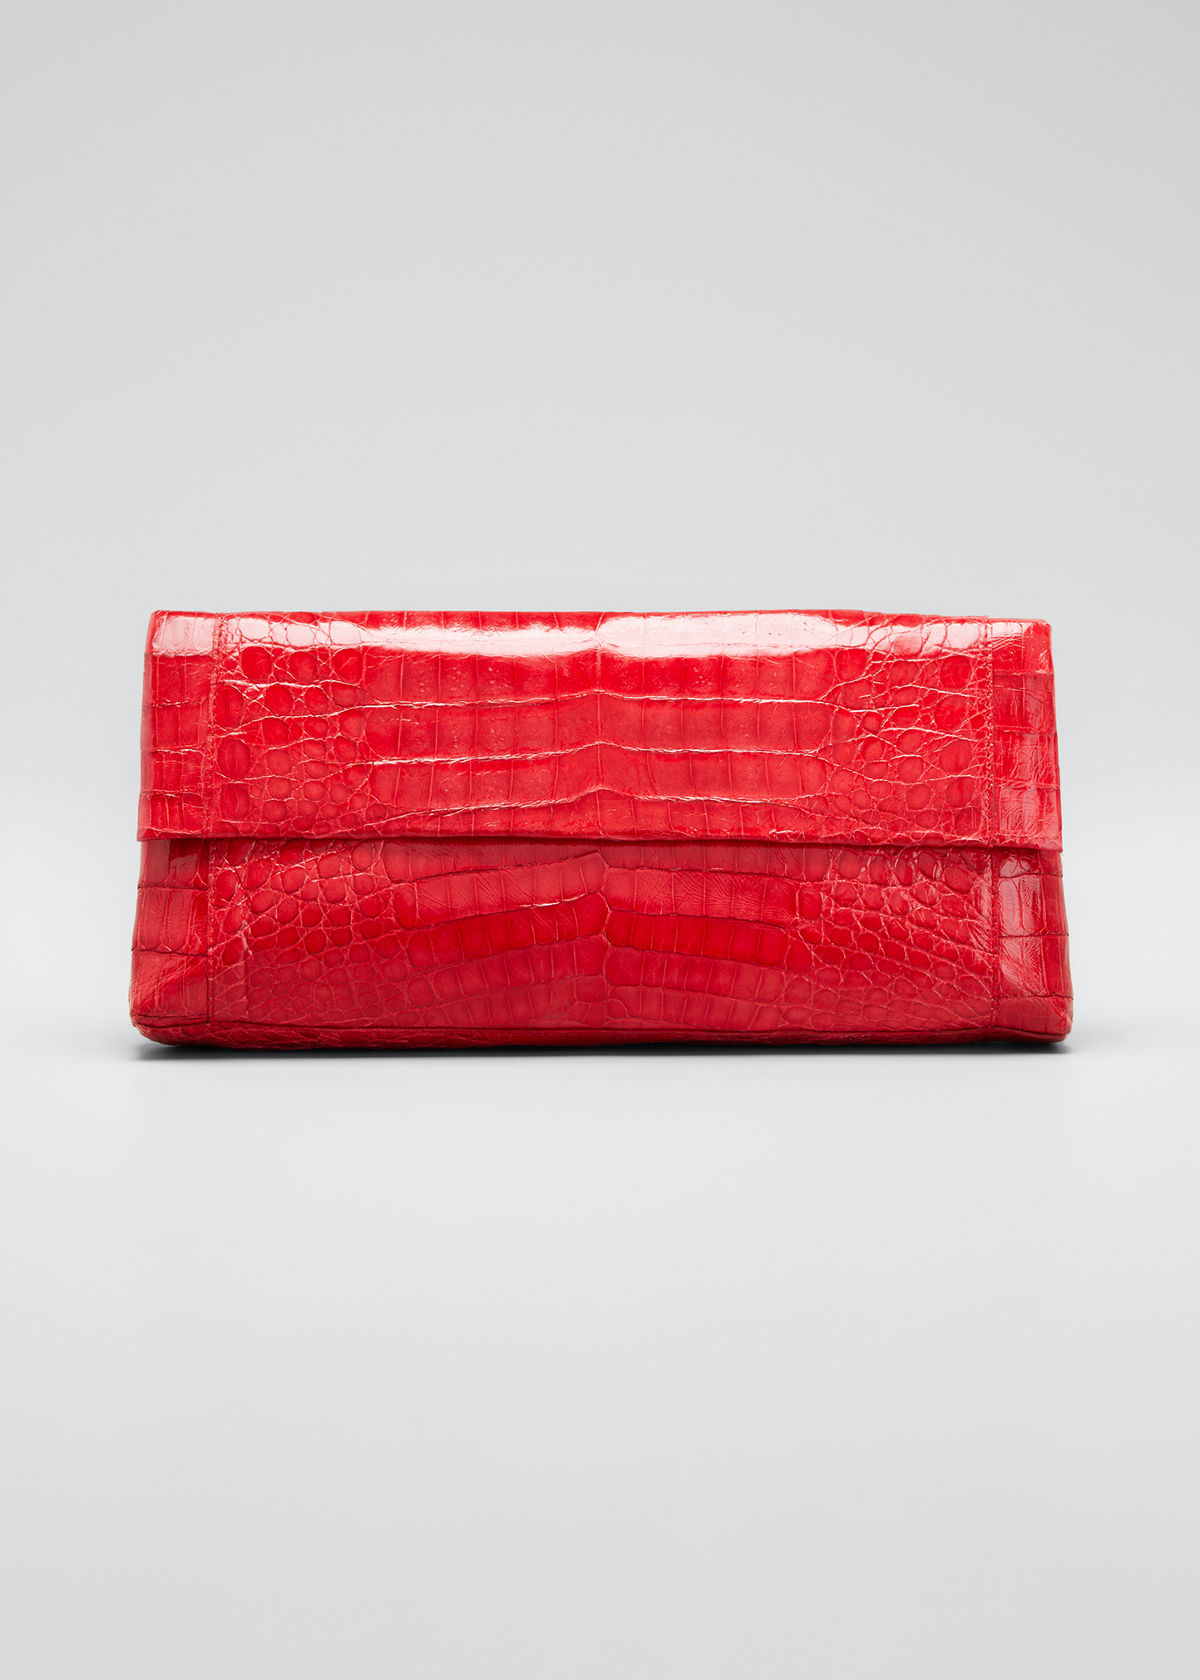 Nancy Gonzalez Pouches GOTHAM CROCODILE FLAP CLUTCH BAG